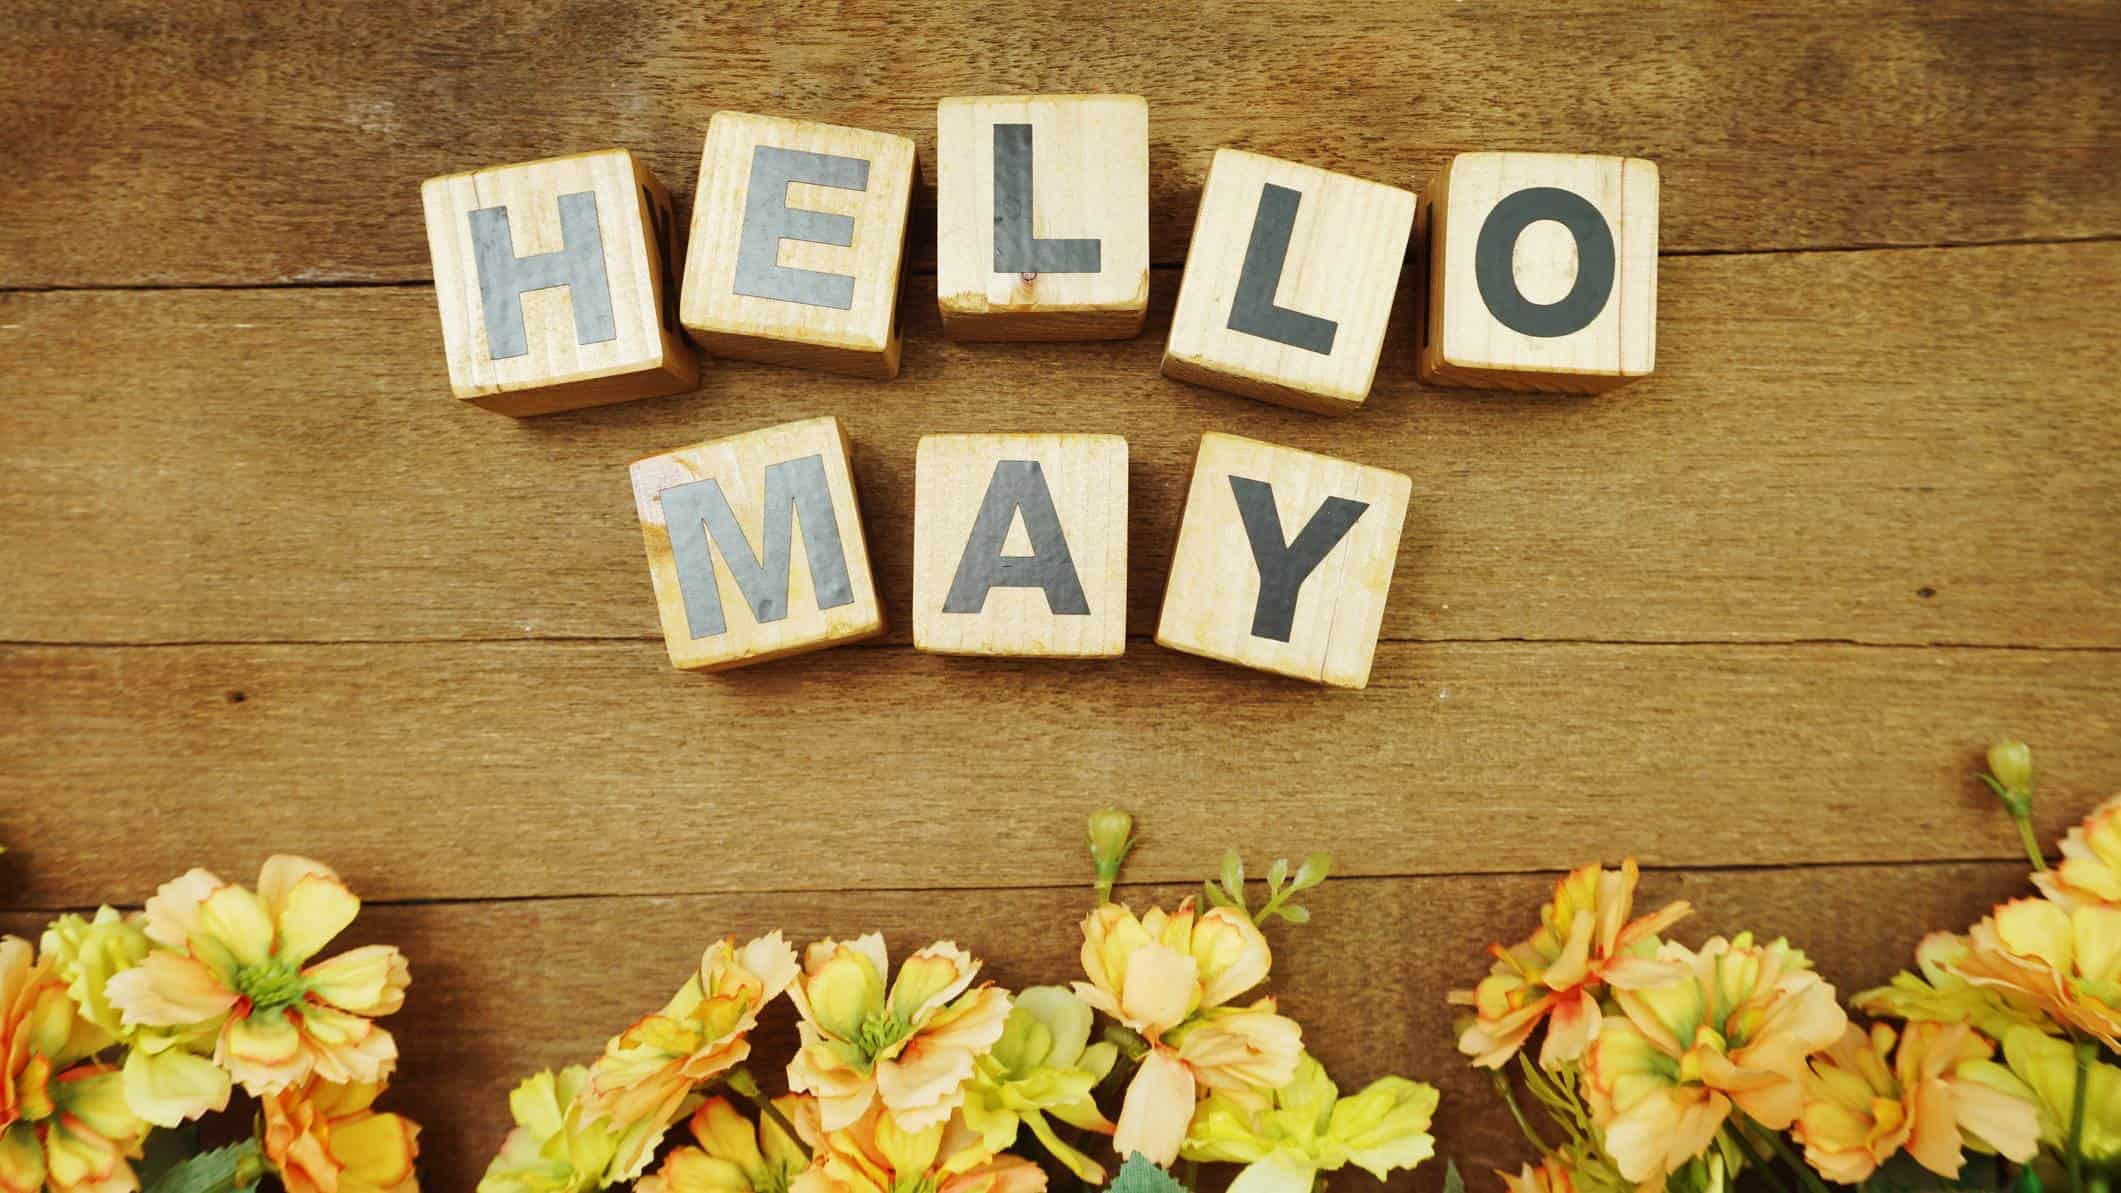 asx shares to buy in may represented by wooden blocks spelling out hello may